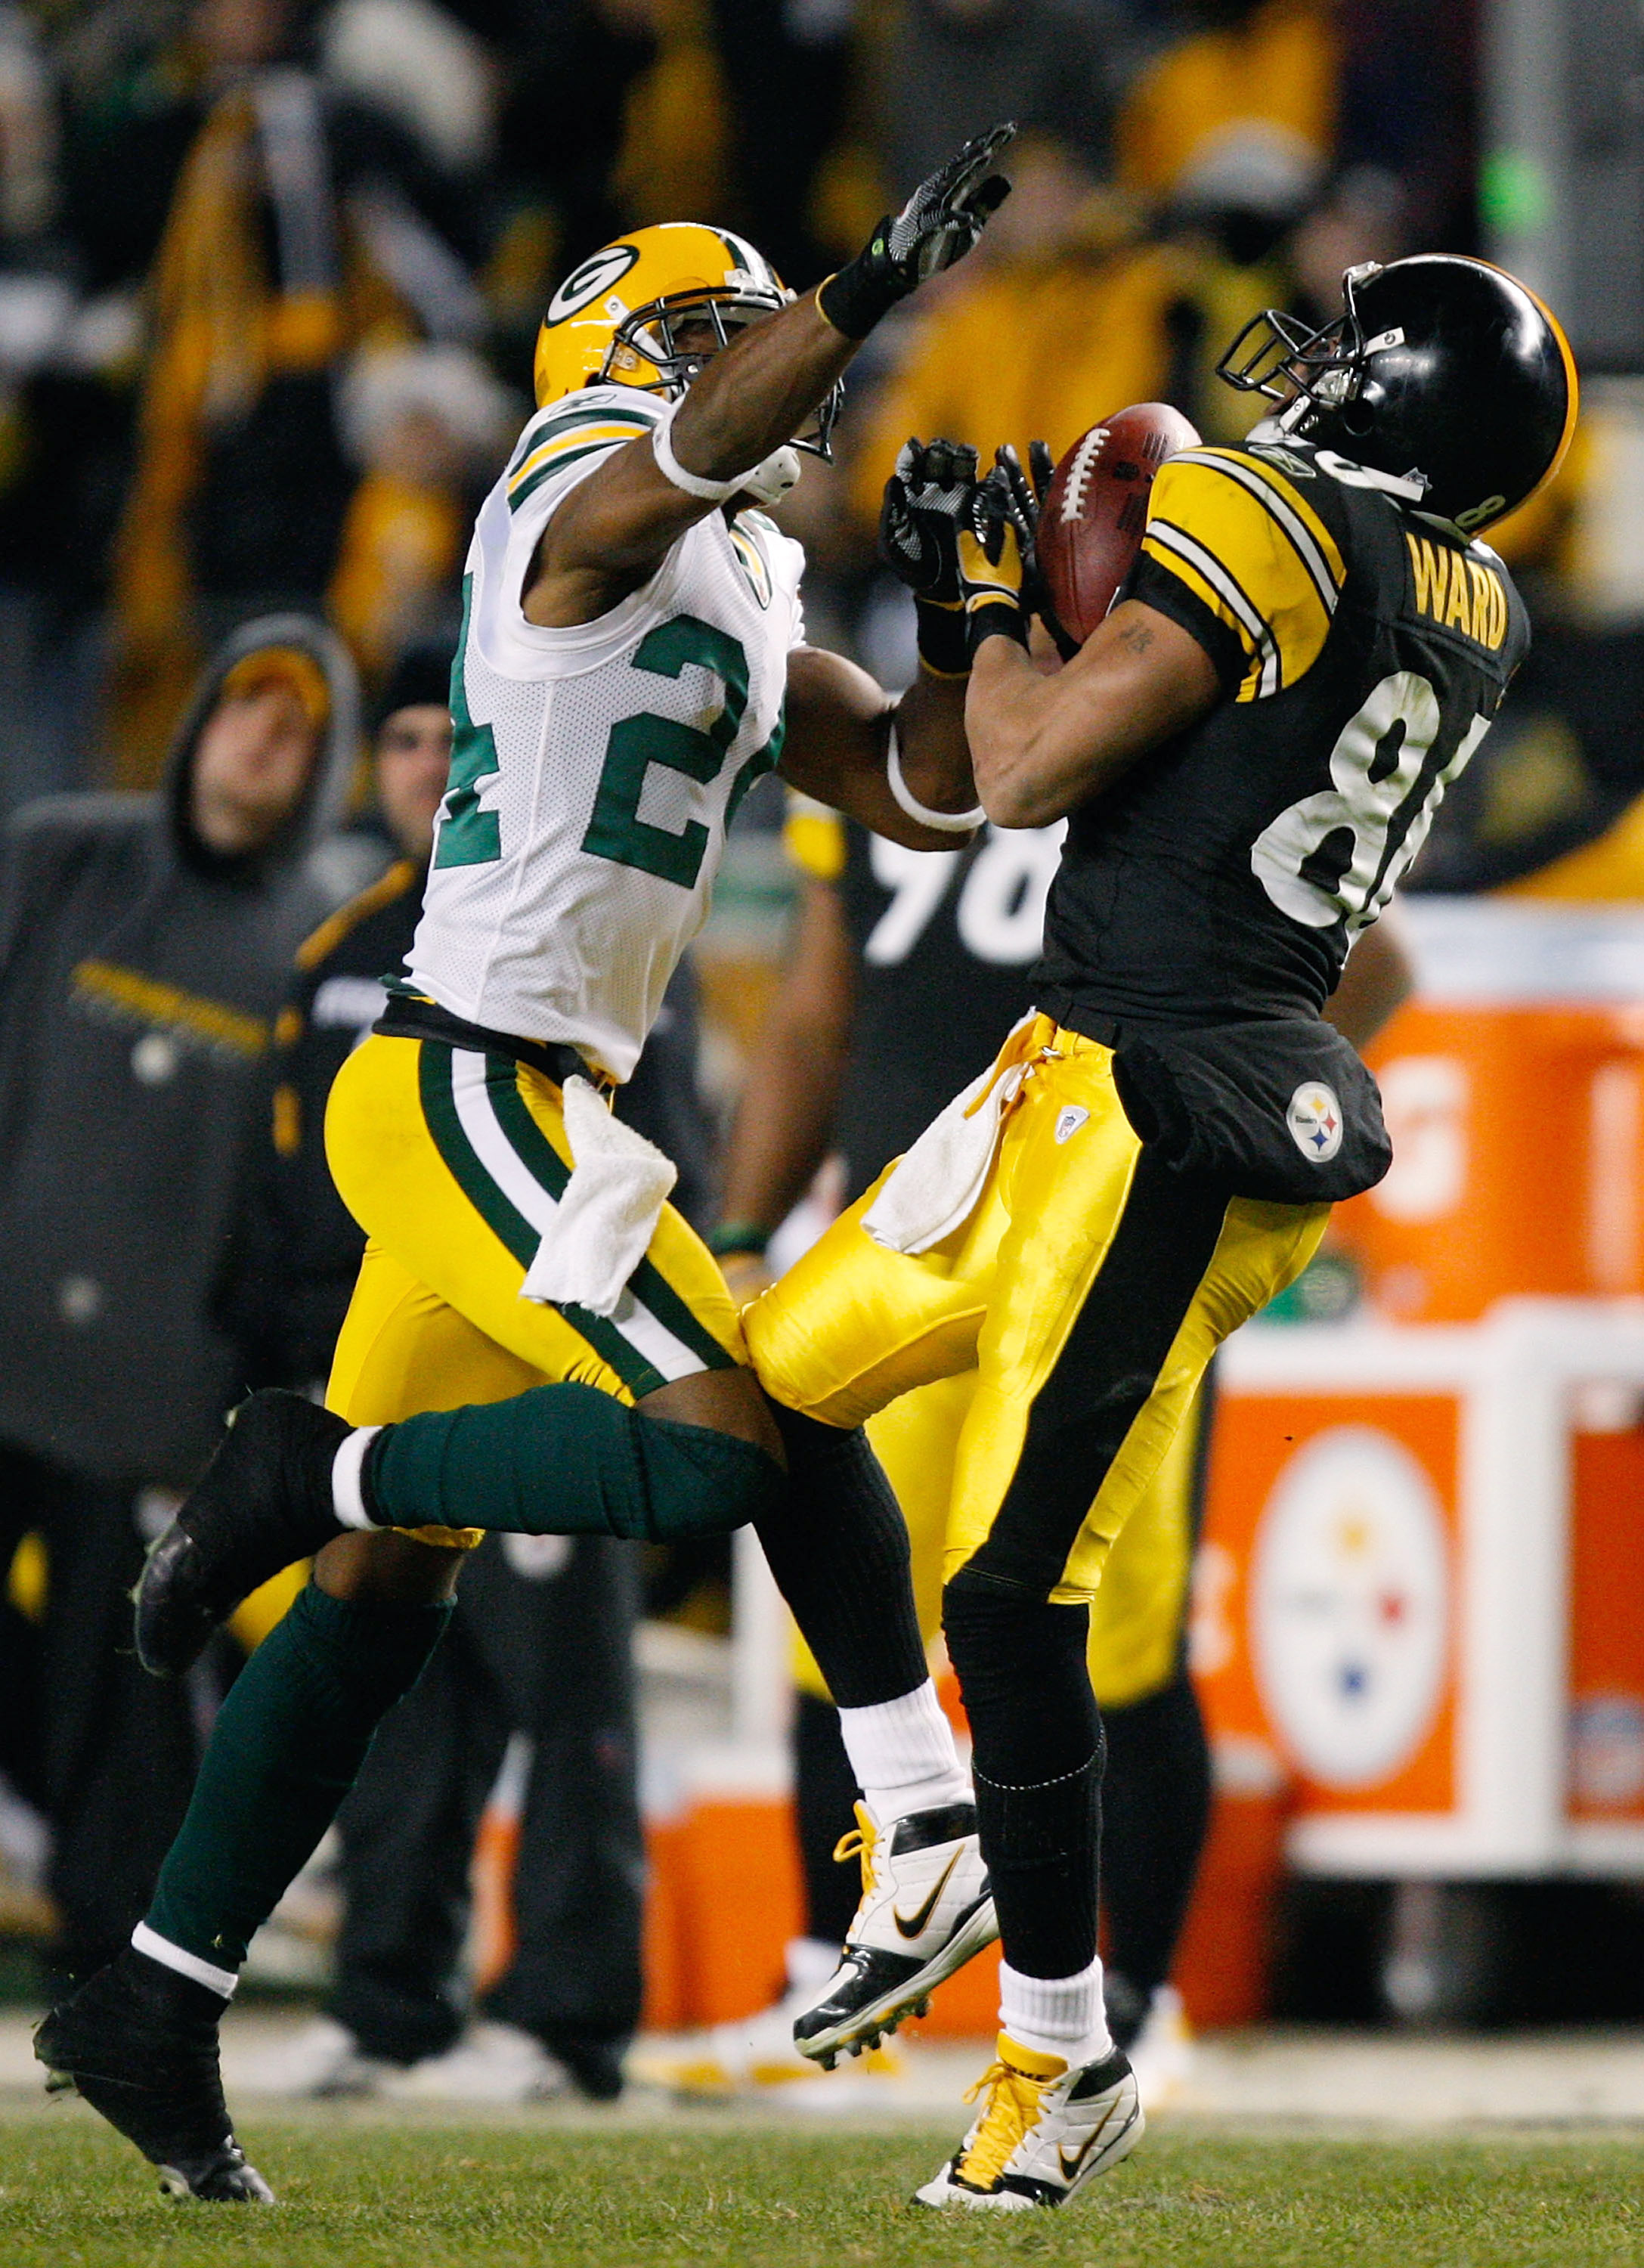 PITTSBURGH - DECEMBER 20: Hines Ward #86 of the Pittsburgh Steelers makes a catch in front of Jarrett Bush #24 of the Green Bay Packers during the game on December 20, 2009 at Heinz Field in Pittsburgh, Pennsylvania. (Photo by Jared Wickerham/Getty Images